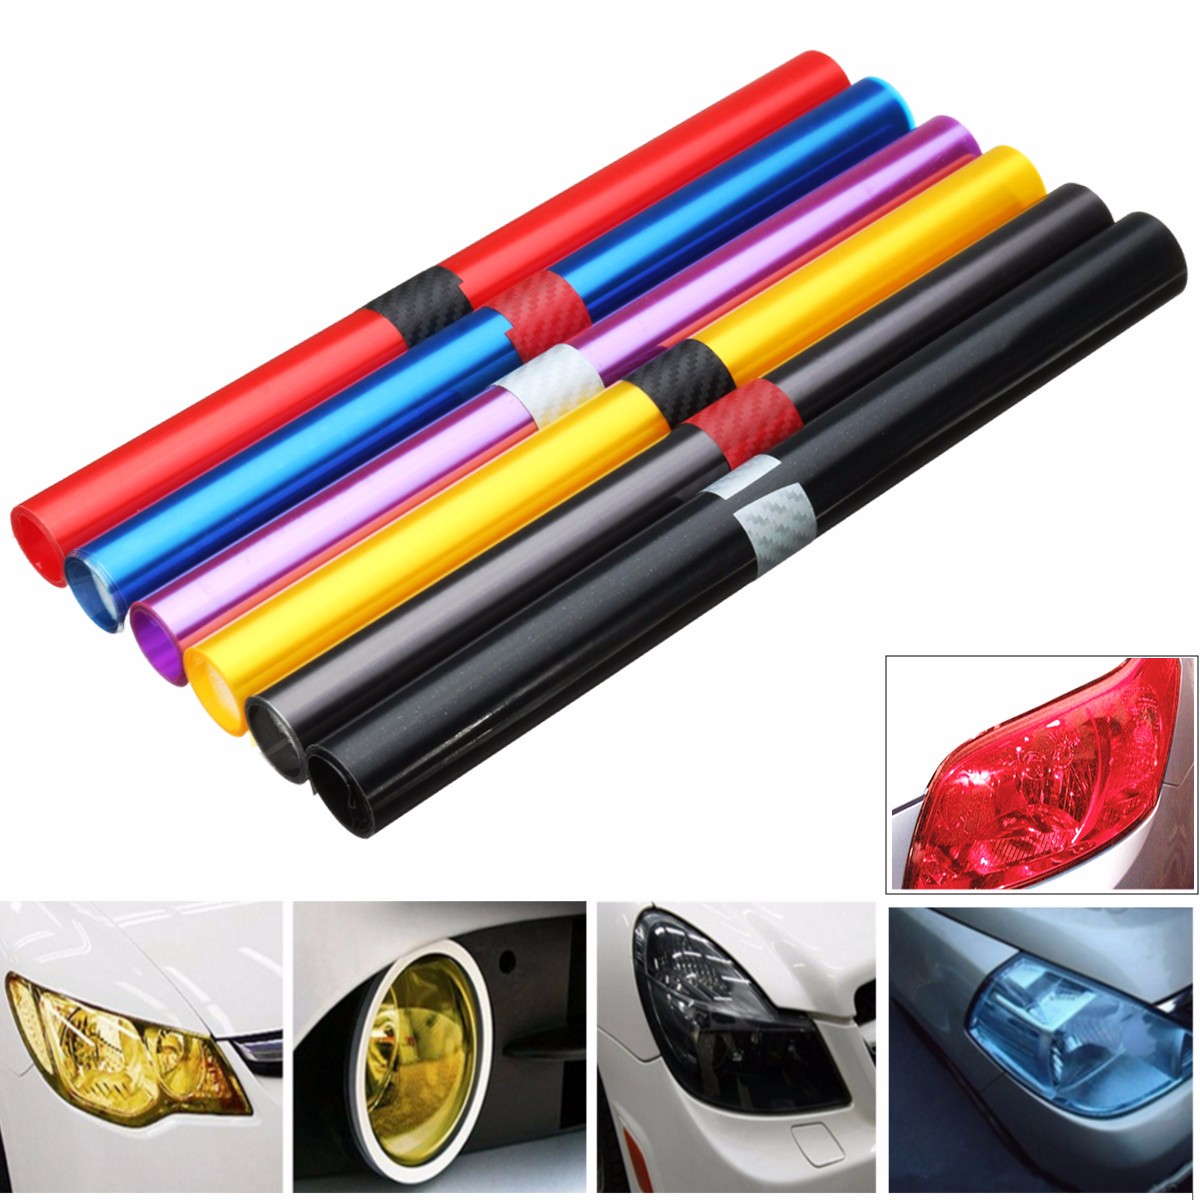 30 x 100cm PVC Car Foil Film Auto Vehicle Tail light Headlight Wrap Sticker Decal Purple Blue Red Yellow Black Brown30 x 100cm PVC Car Foil Film Auto Vehicle Tail light Headlight Wrap Sticker Decal Purple Blue Red Yellow Black Brown